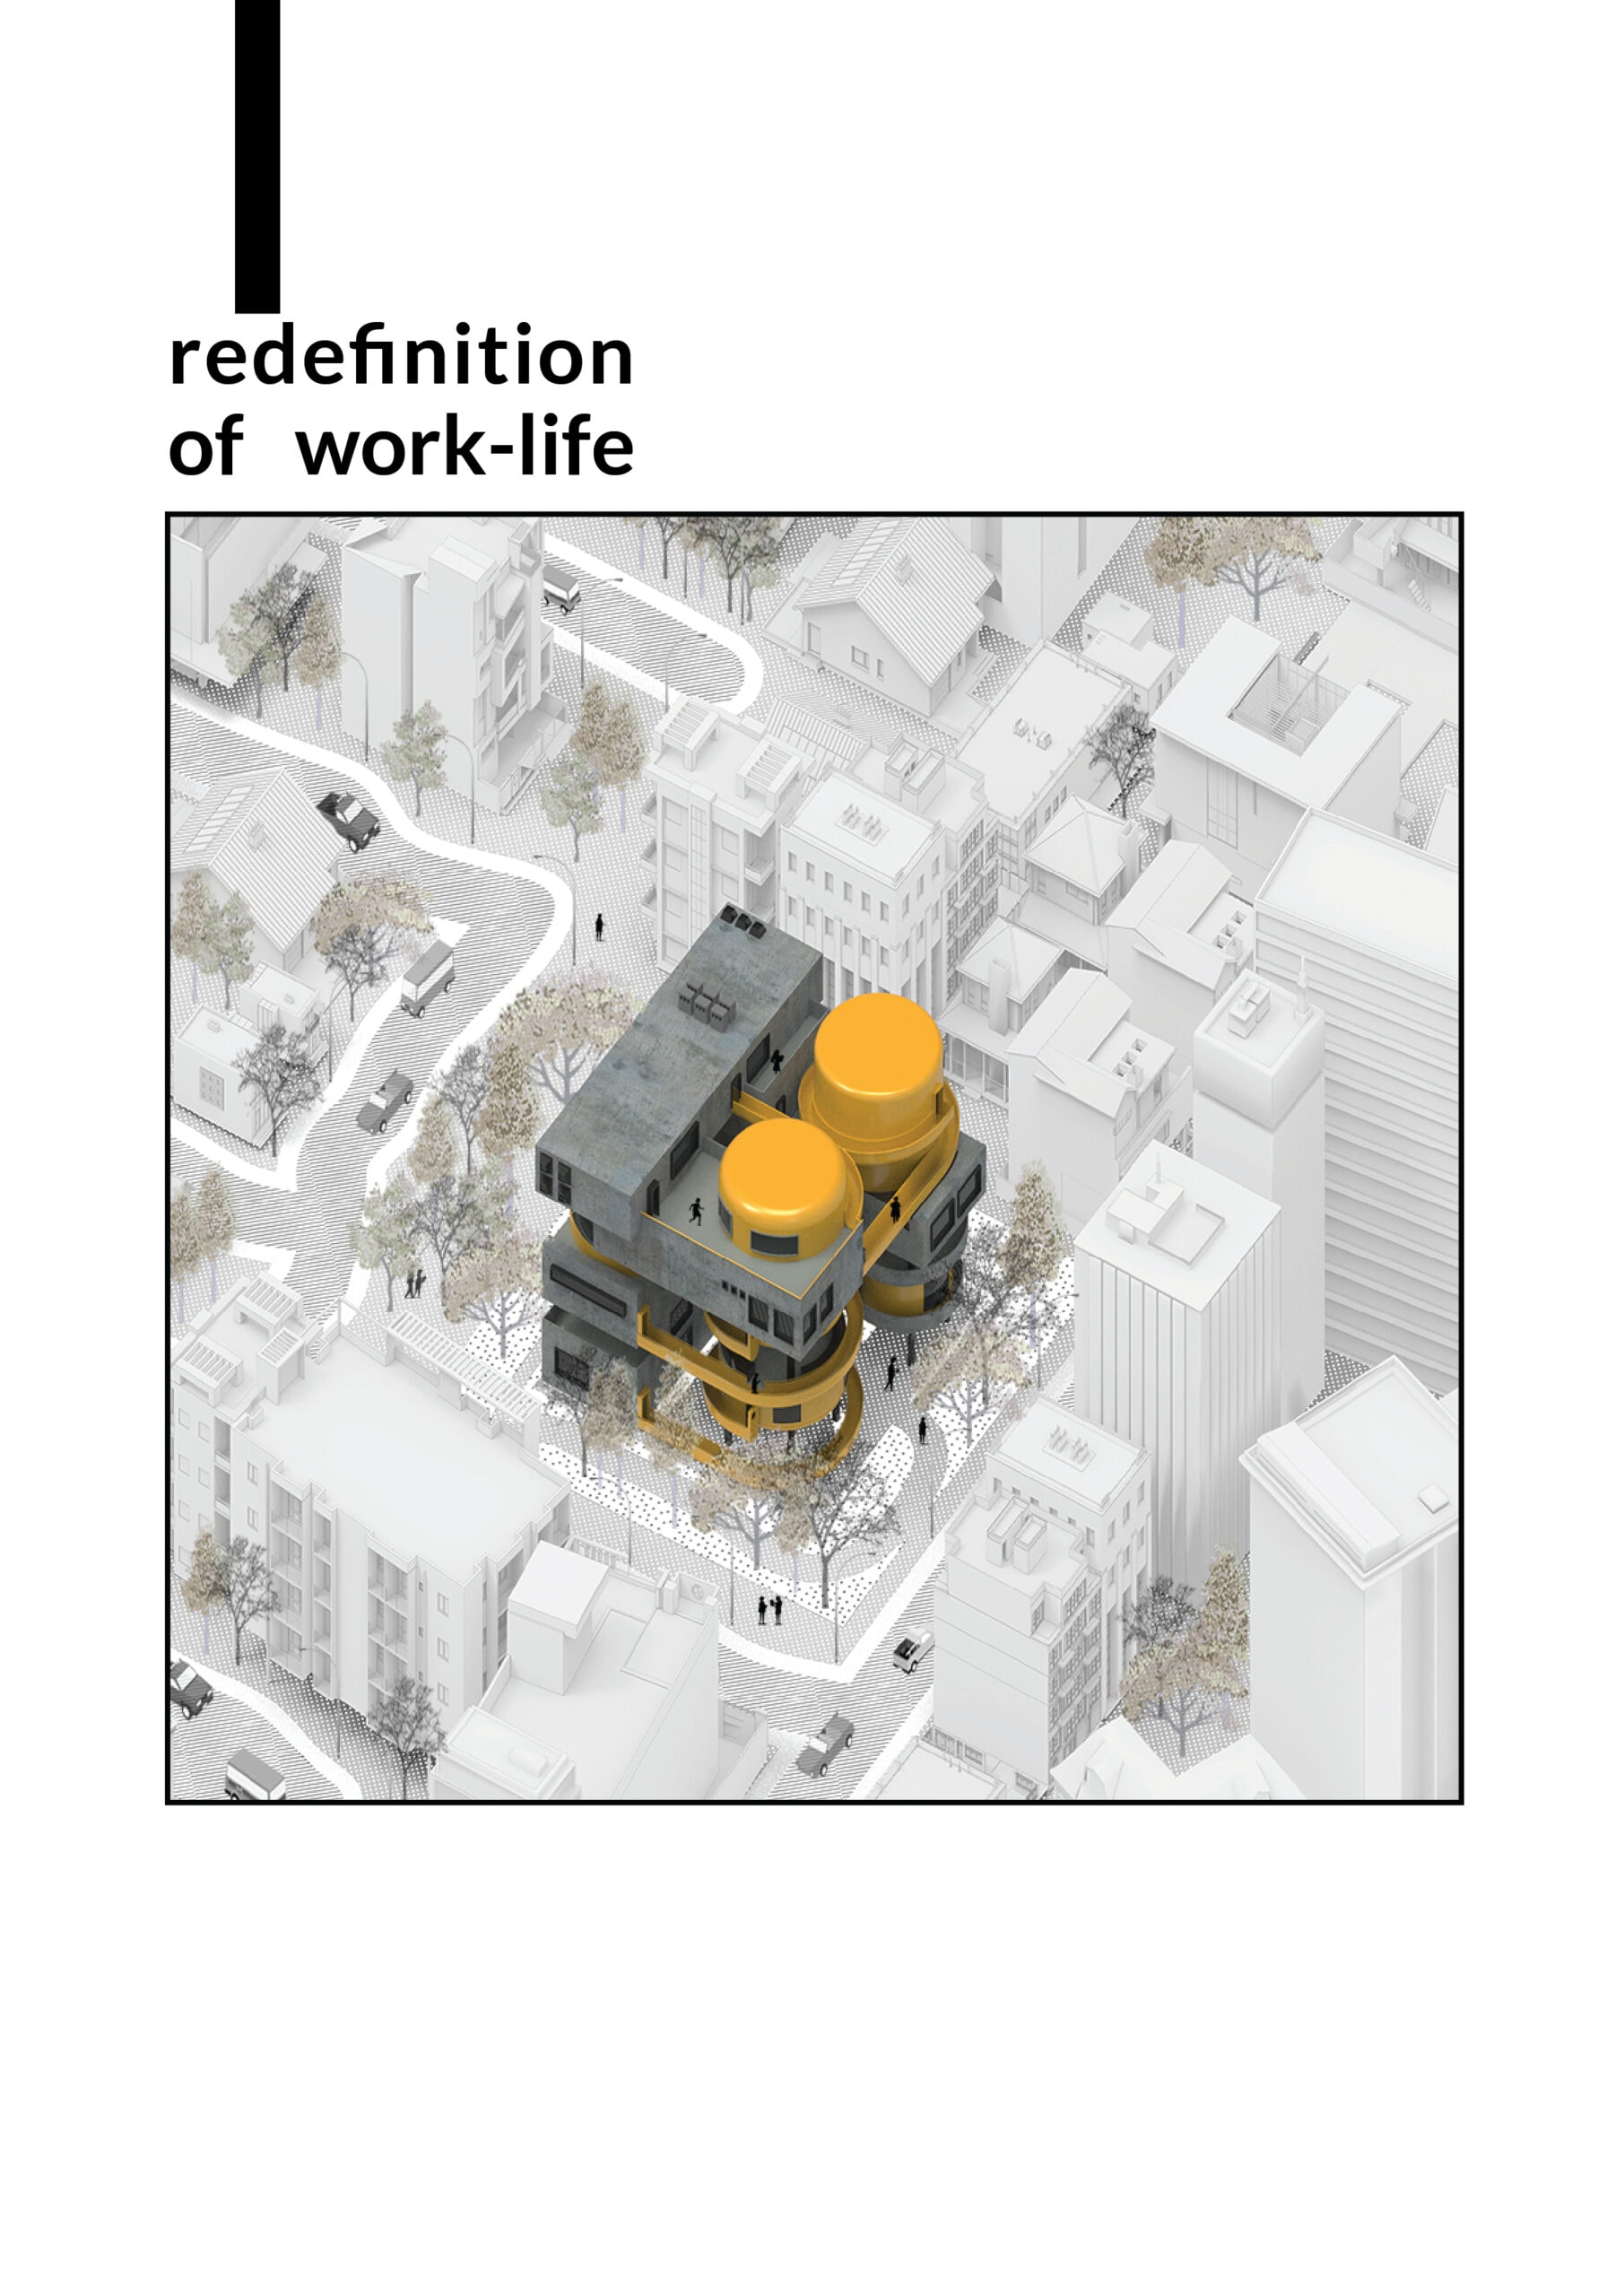 18012_Redefinition of work-life_Block